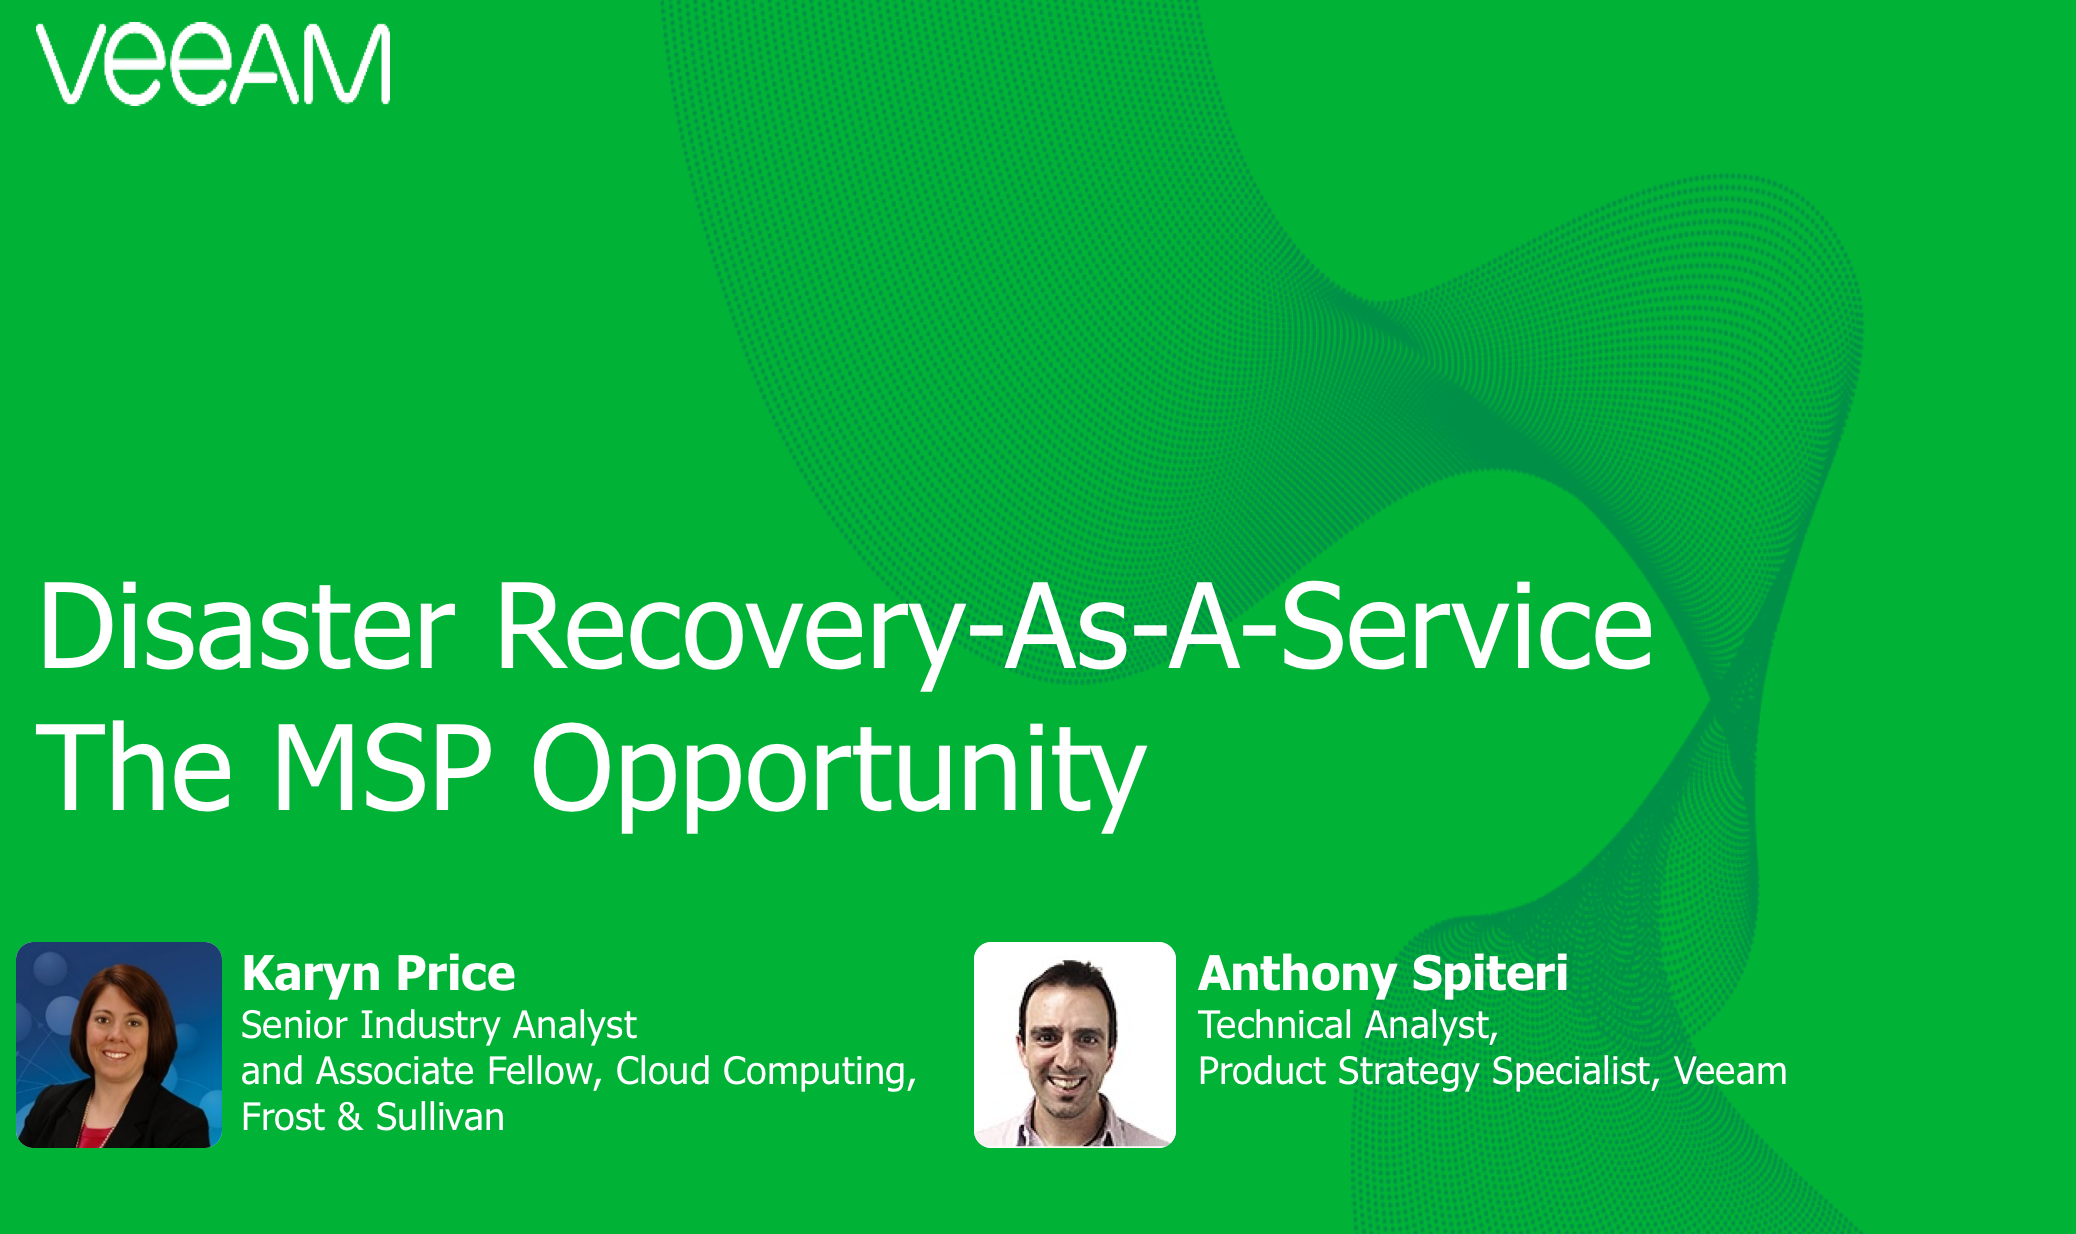 Disaster Recovery-as-a-Service (DRaaS): The MSP opportunity & Veeam